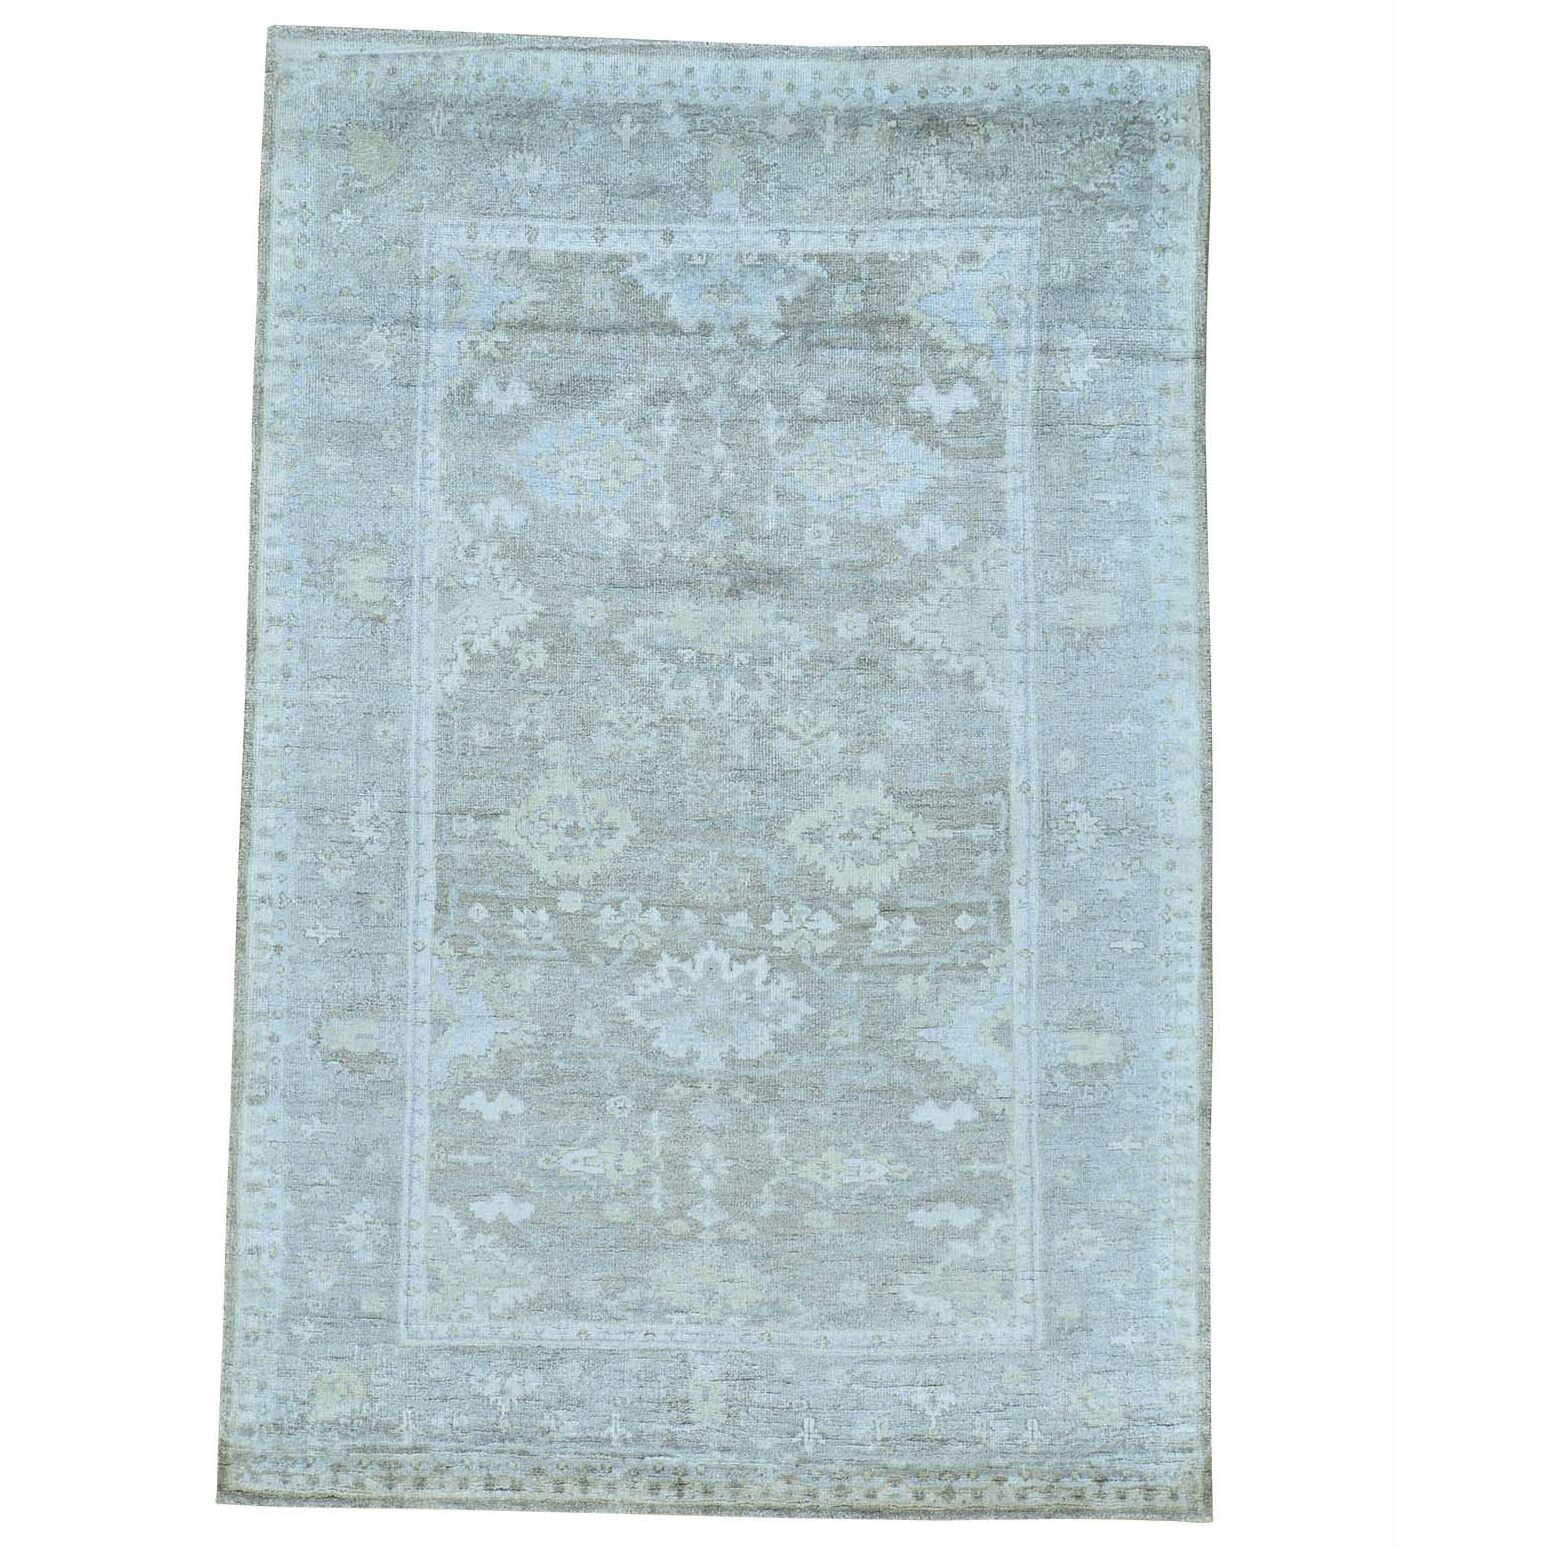 One-of-a-Kind Kating Natural Dyes Hand-Knotted Taupe/Sky Blue Area Rug